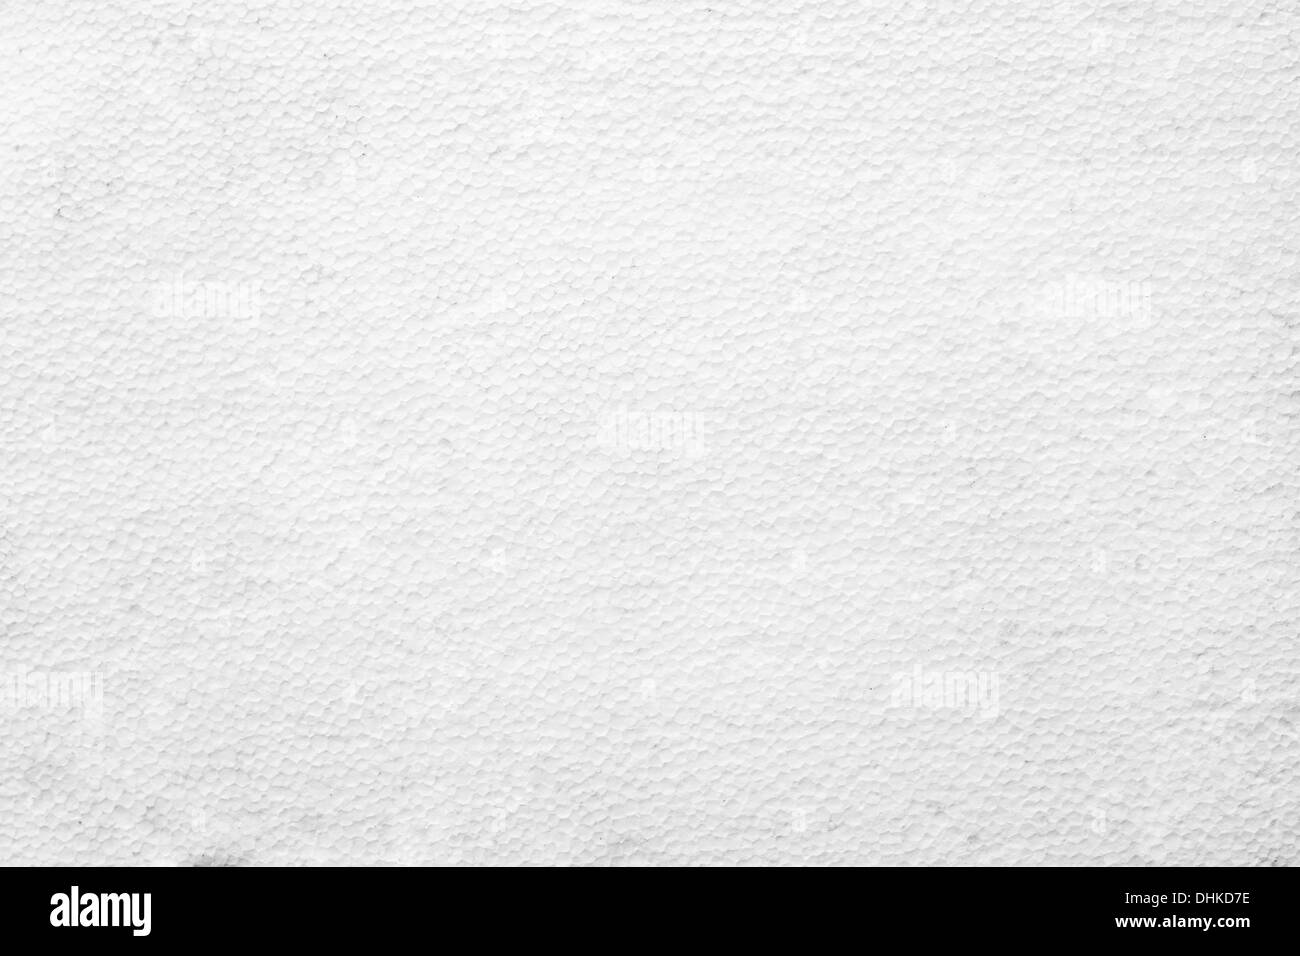 Paper texture for artwork - Stock Image